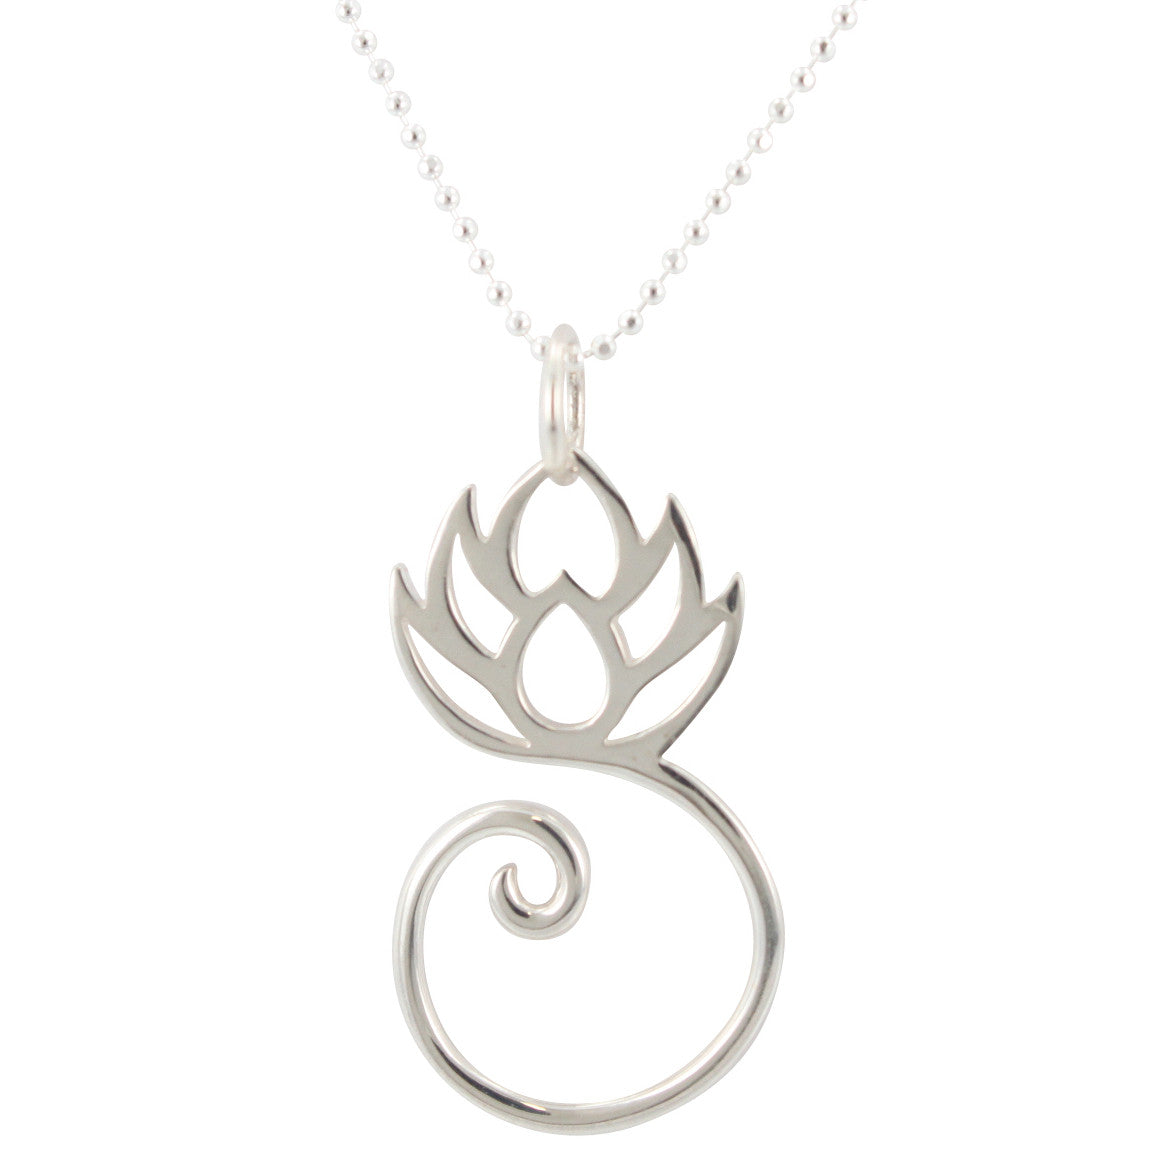 Sterling silver lotus flower charm holder necklace 8438 ss zoe sterling silver lotus flower charm holder necklace 8438 ss aloadofball